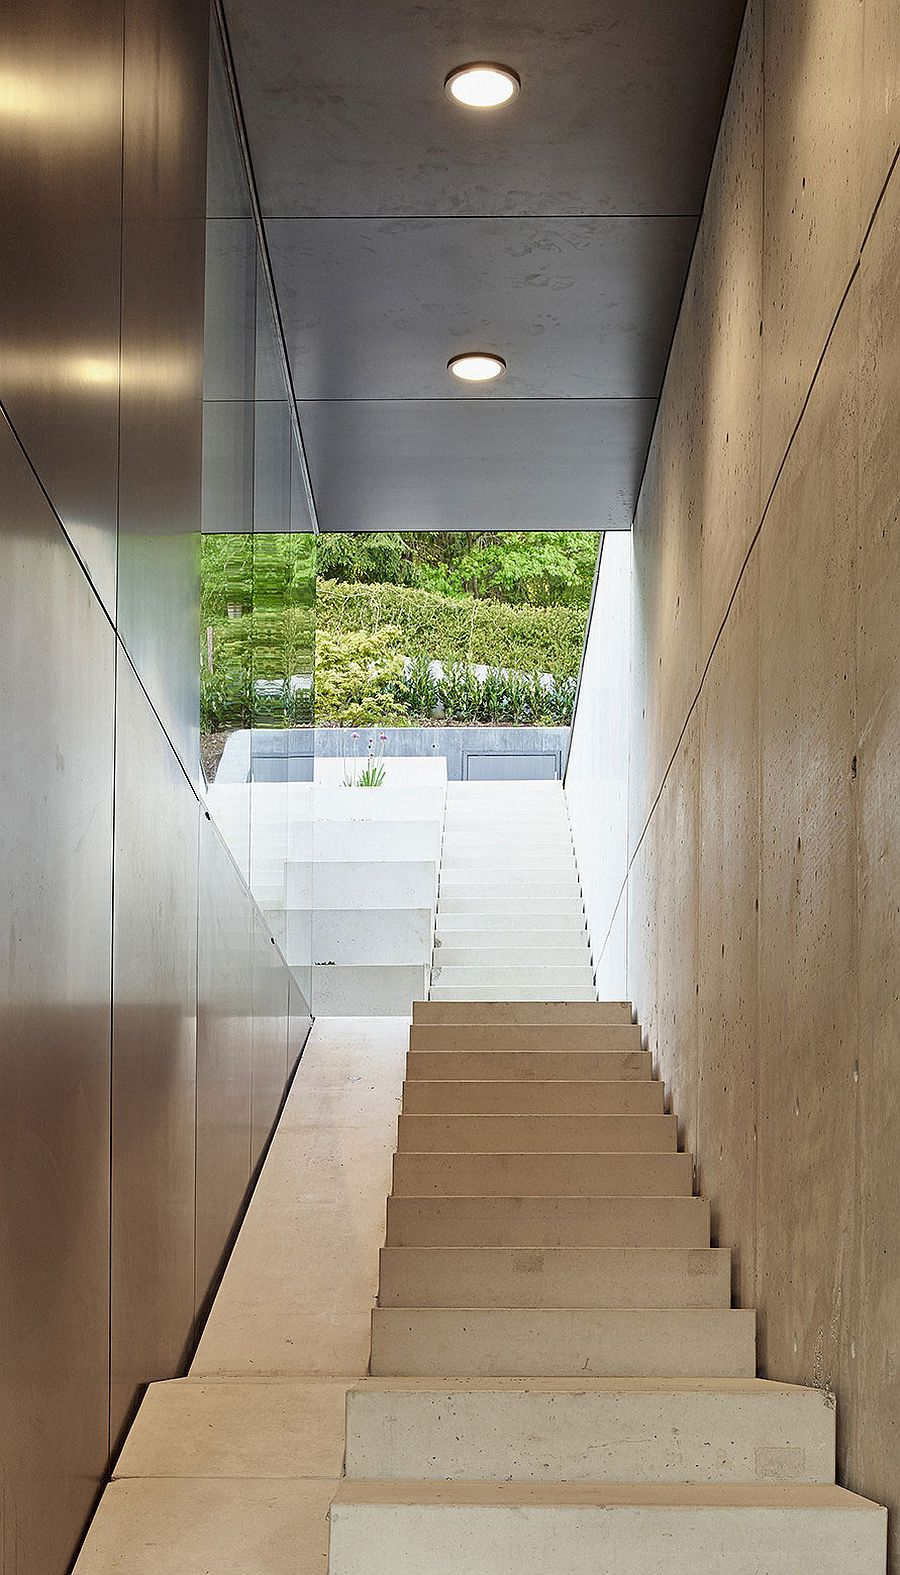 Central staircase the connects the various levels of the house with outdoors